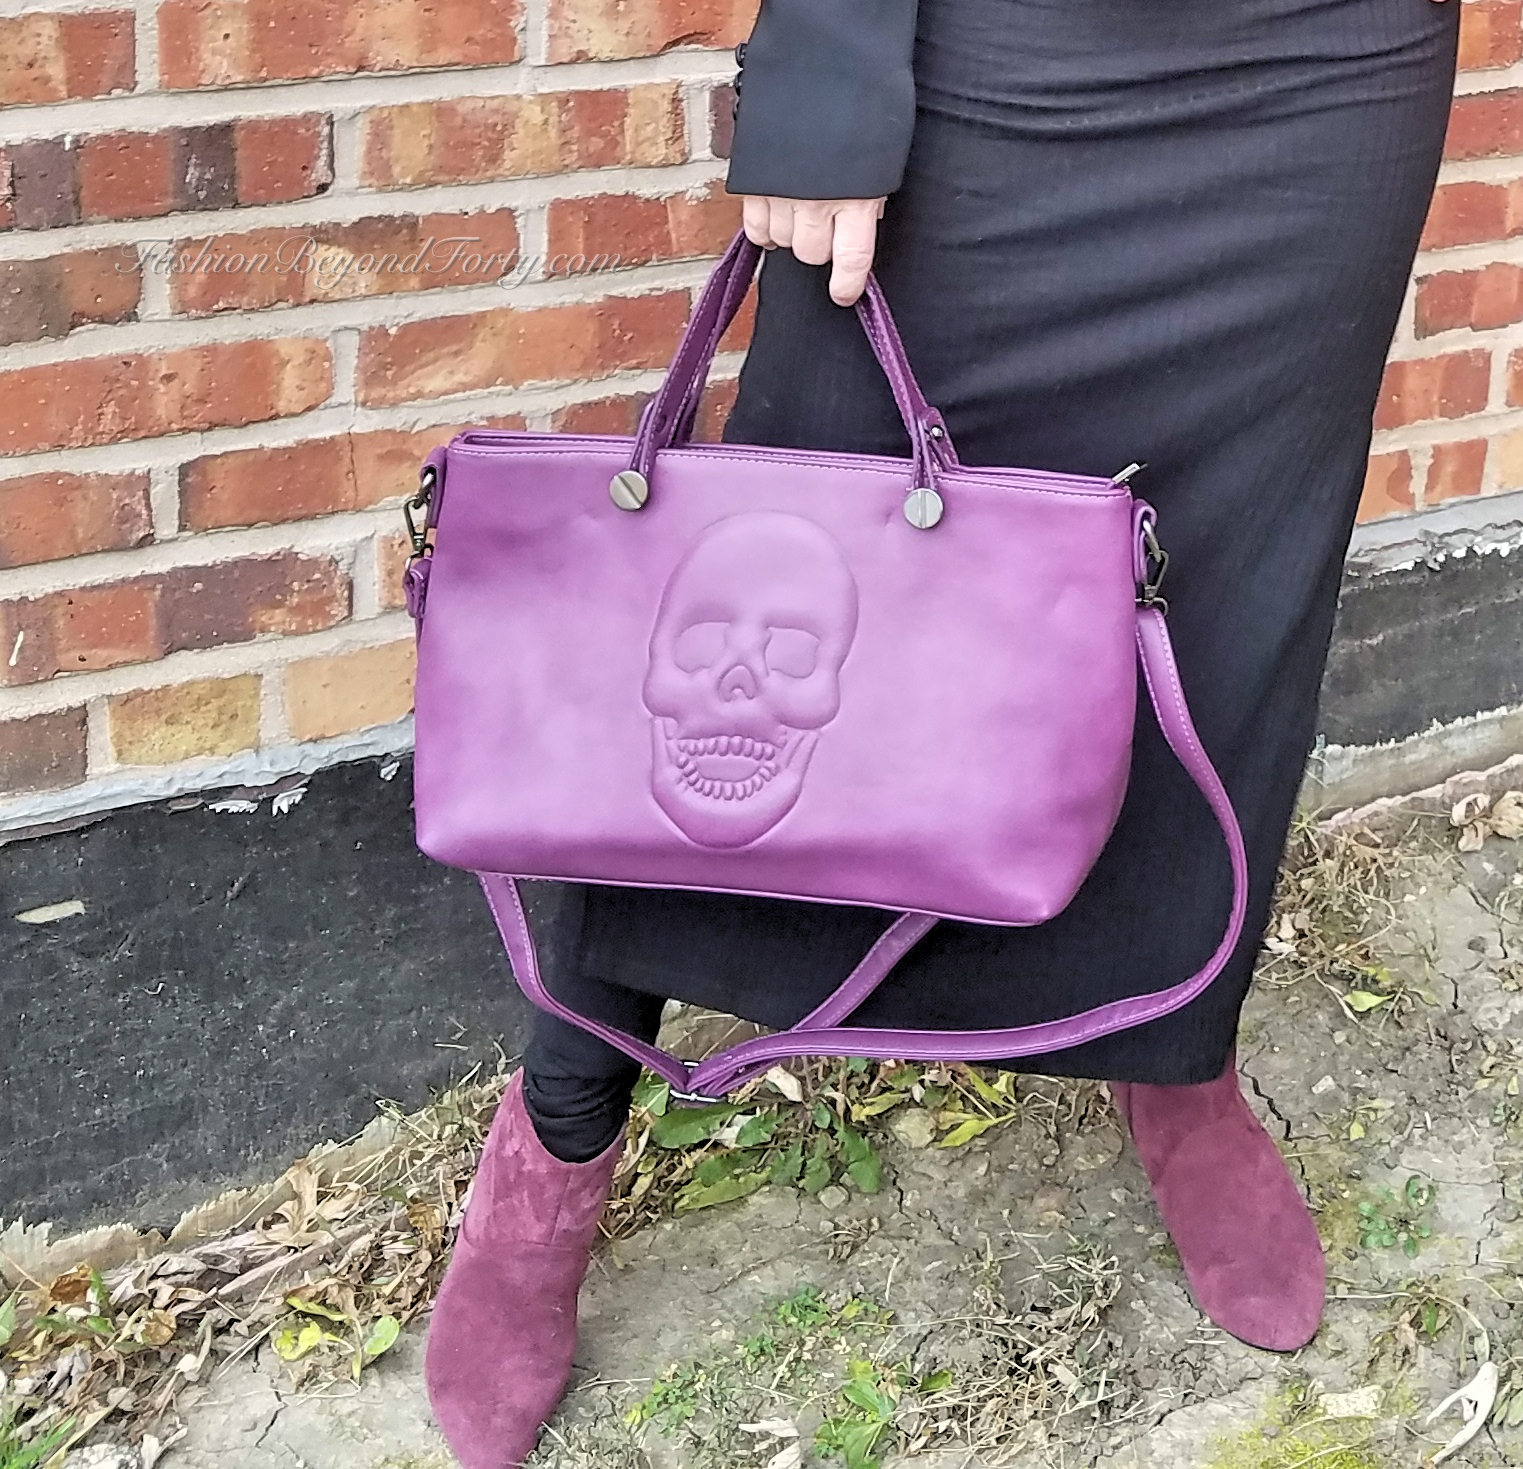 Fashion Focus: An Edgy Holiday Look With Mechaly Vegan Bags Plus 35% Off